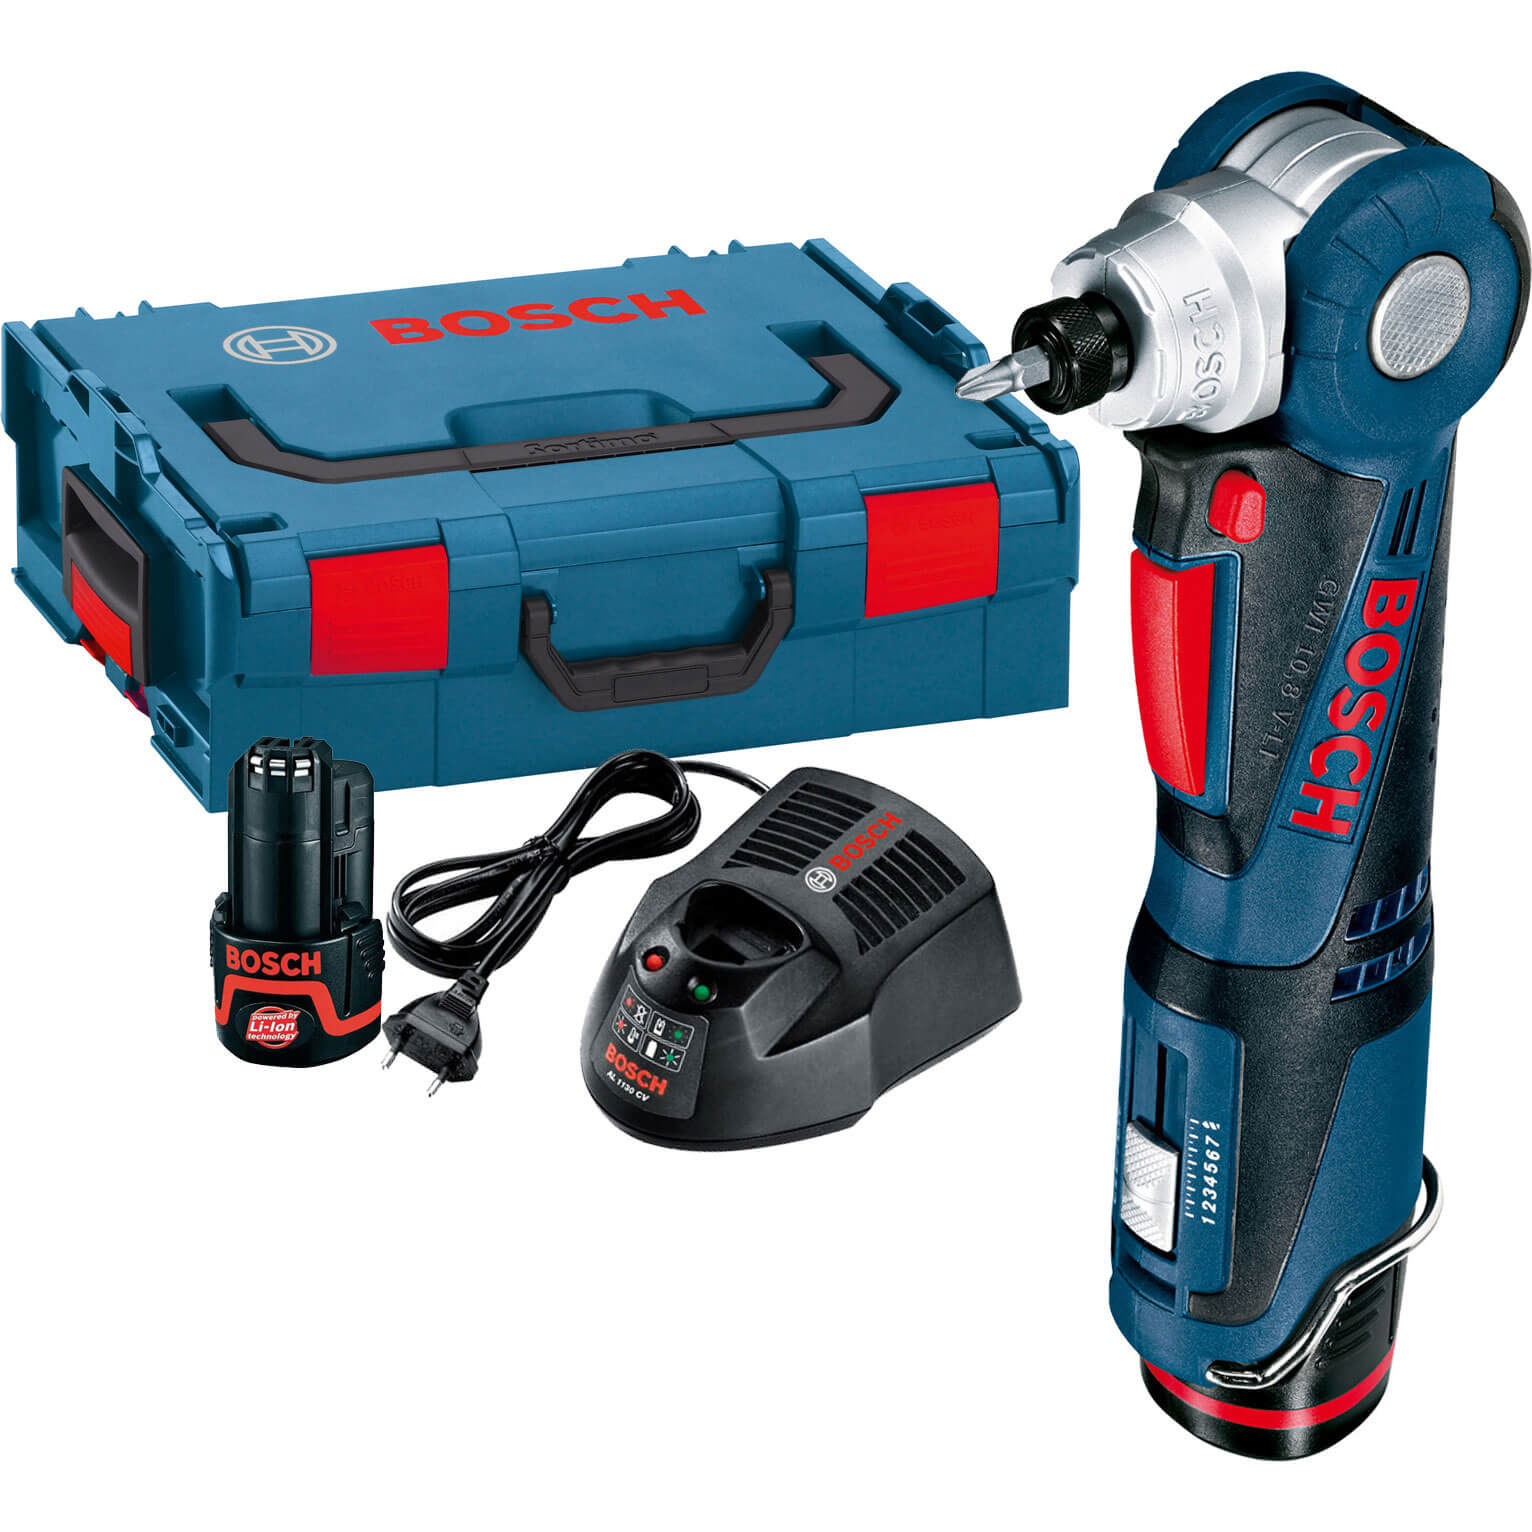 Bosch GWI 10.8 V-Li 10.8v Cordless Angle Screwdriver with L Boxx & 2 Li-ion Batteries 2ah